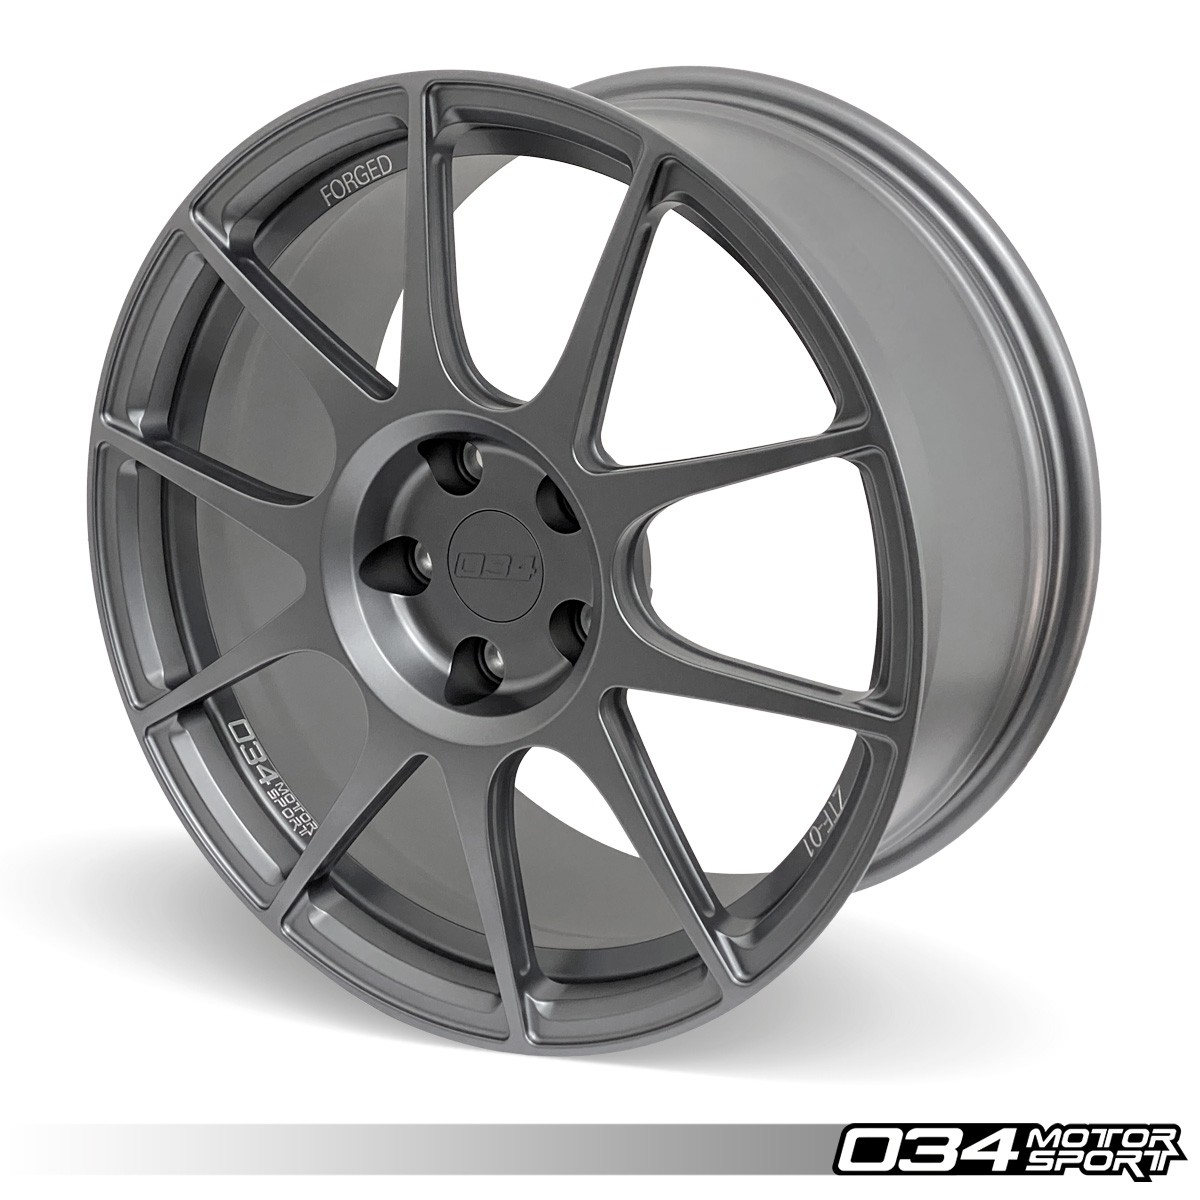 034-604-0001 ZTF-01 Forged Wheel, 18x8.5 ET45, 57.1mm Bore